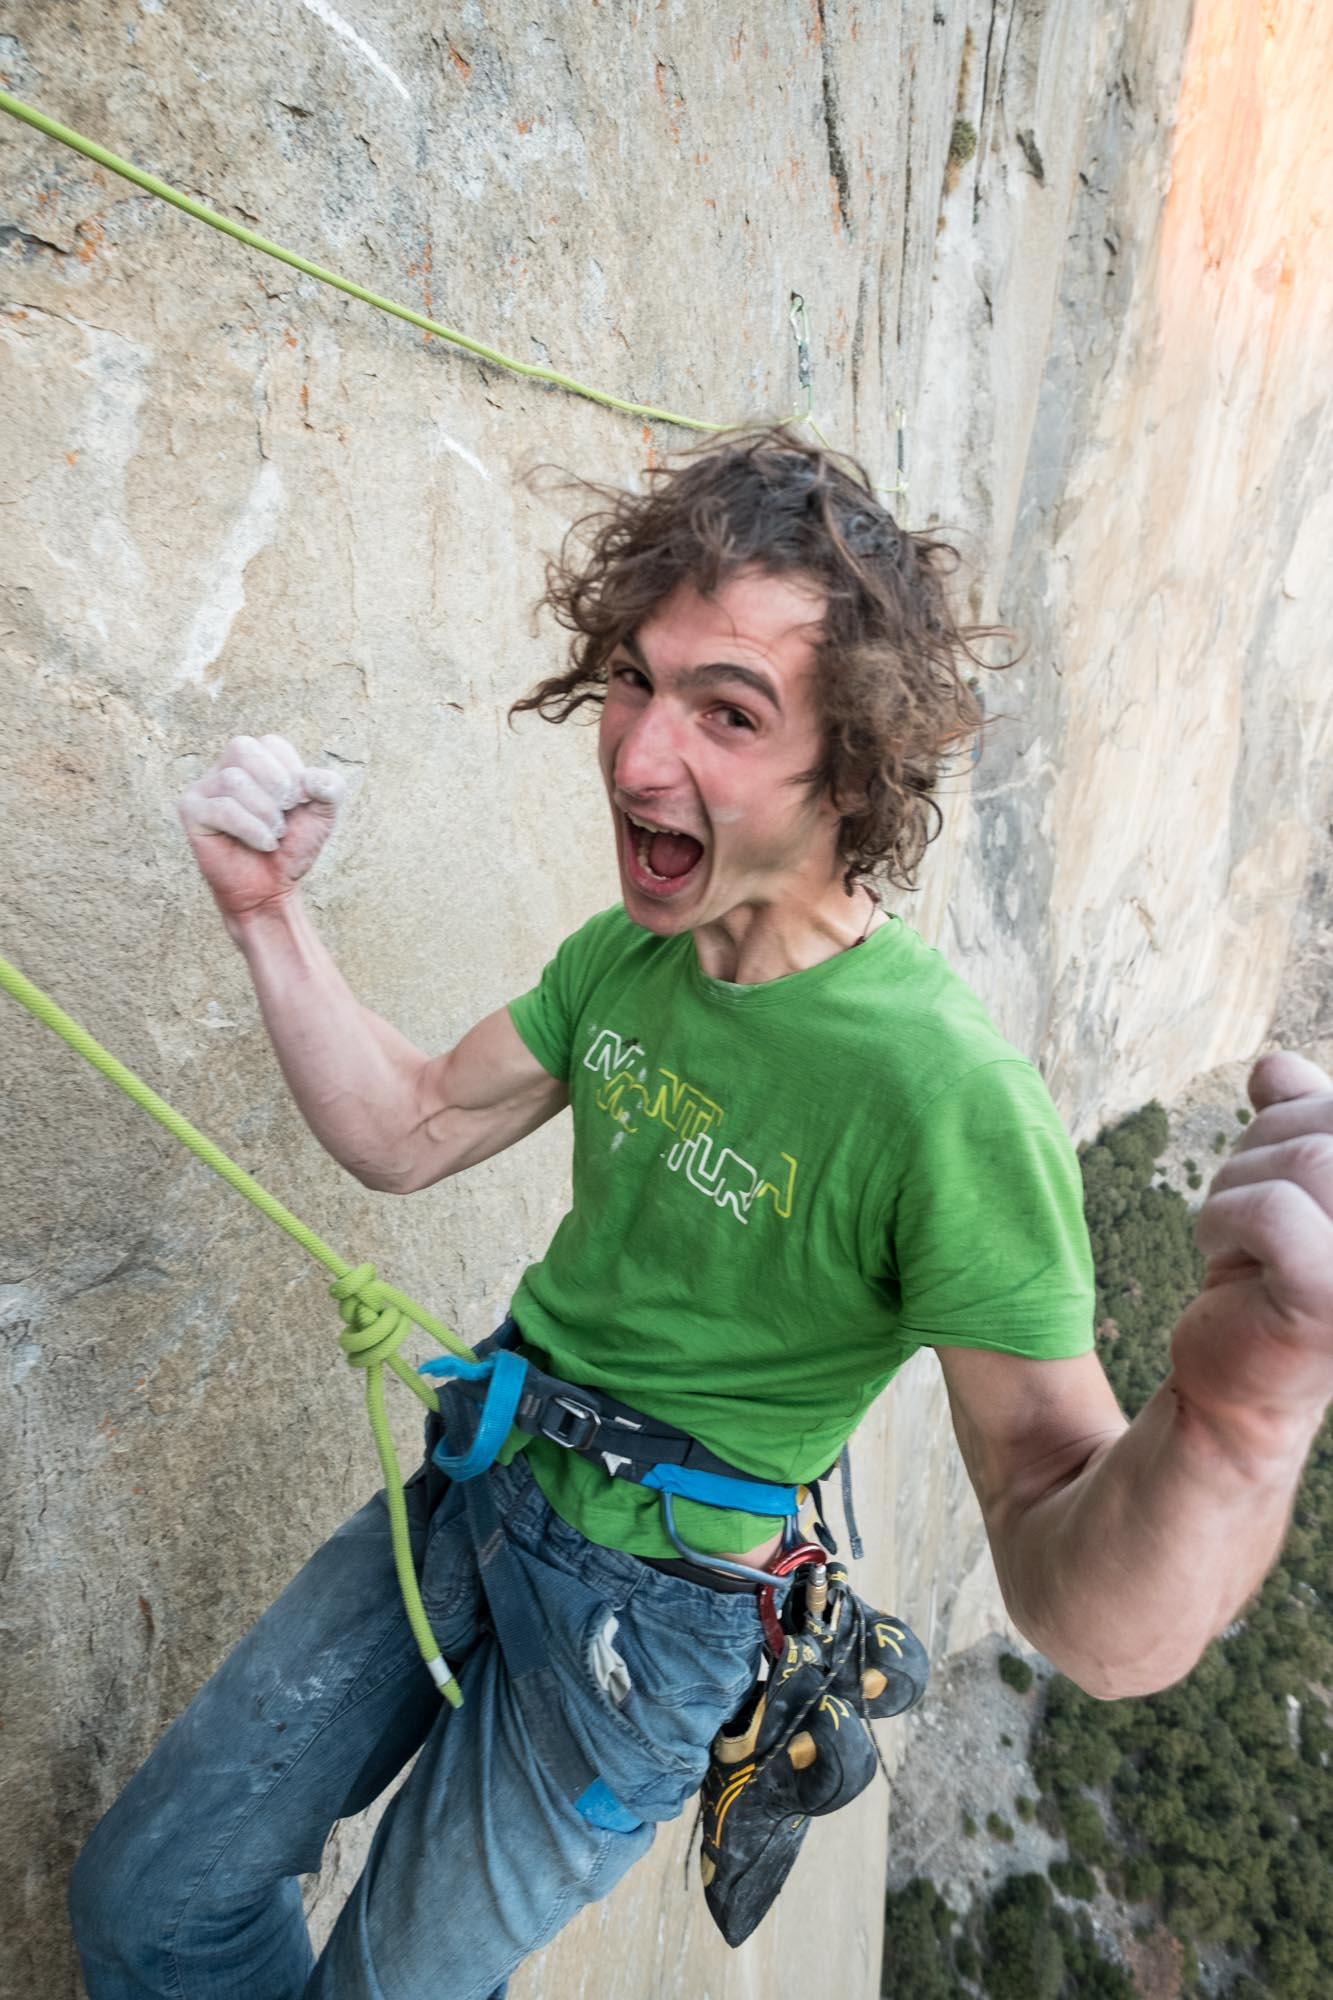 Adam Ondra celebrating after he finished the most difficult pitches of the climb. Photo Courtesy Heinz Zak/ Black Diamond Equipment